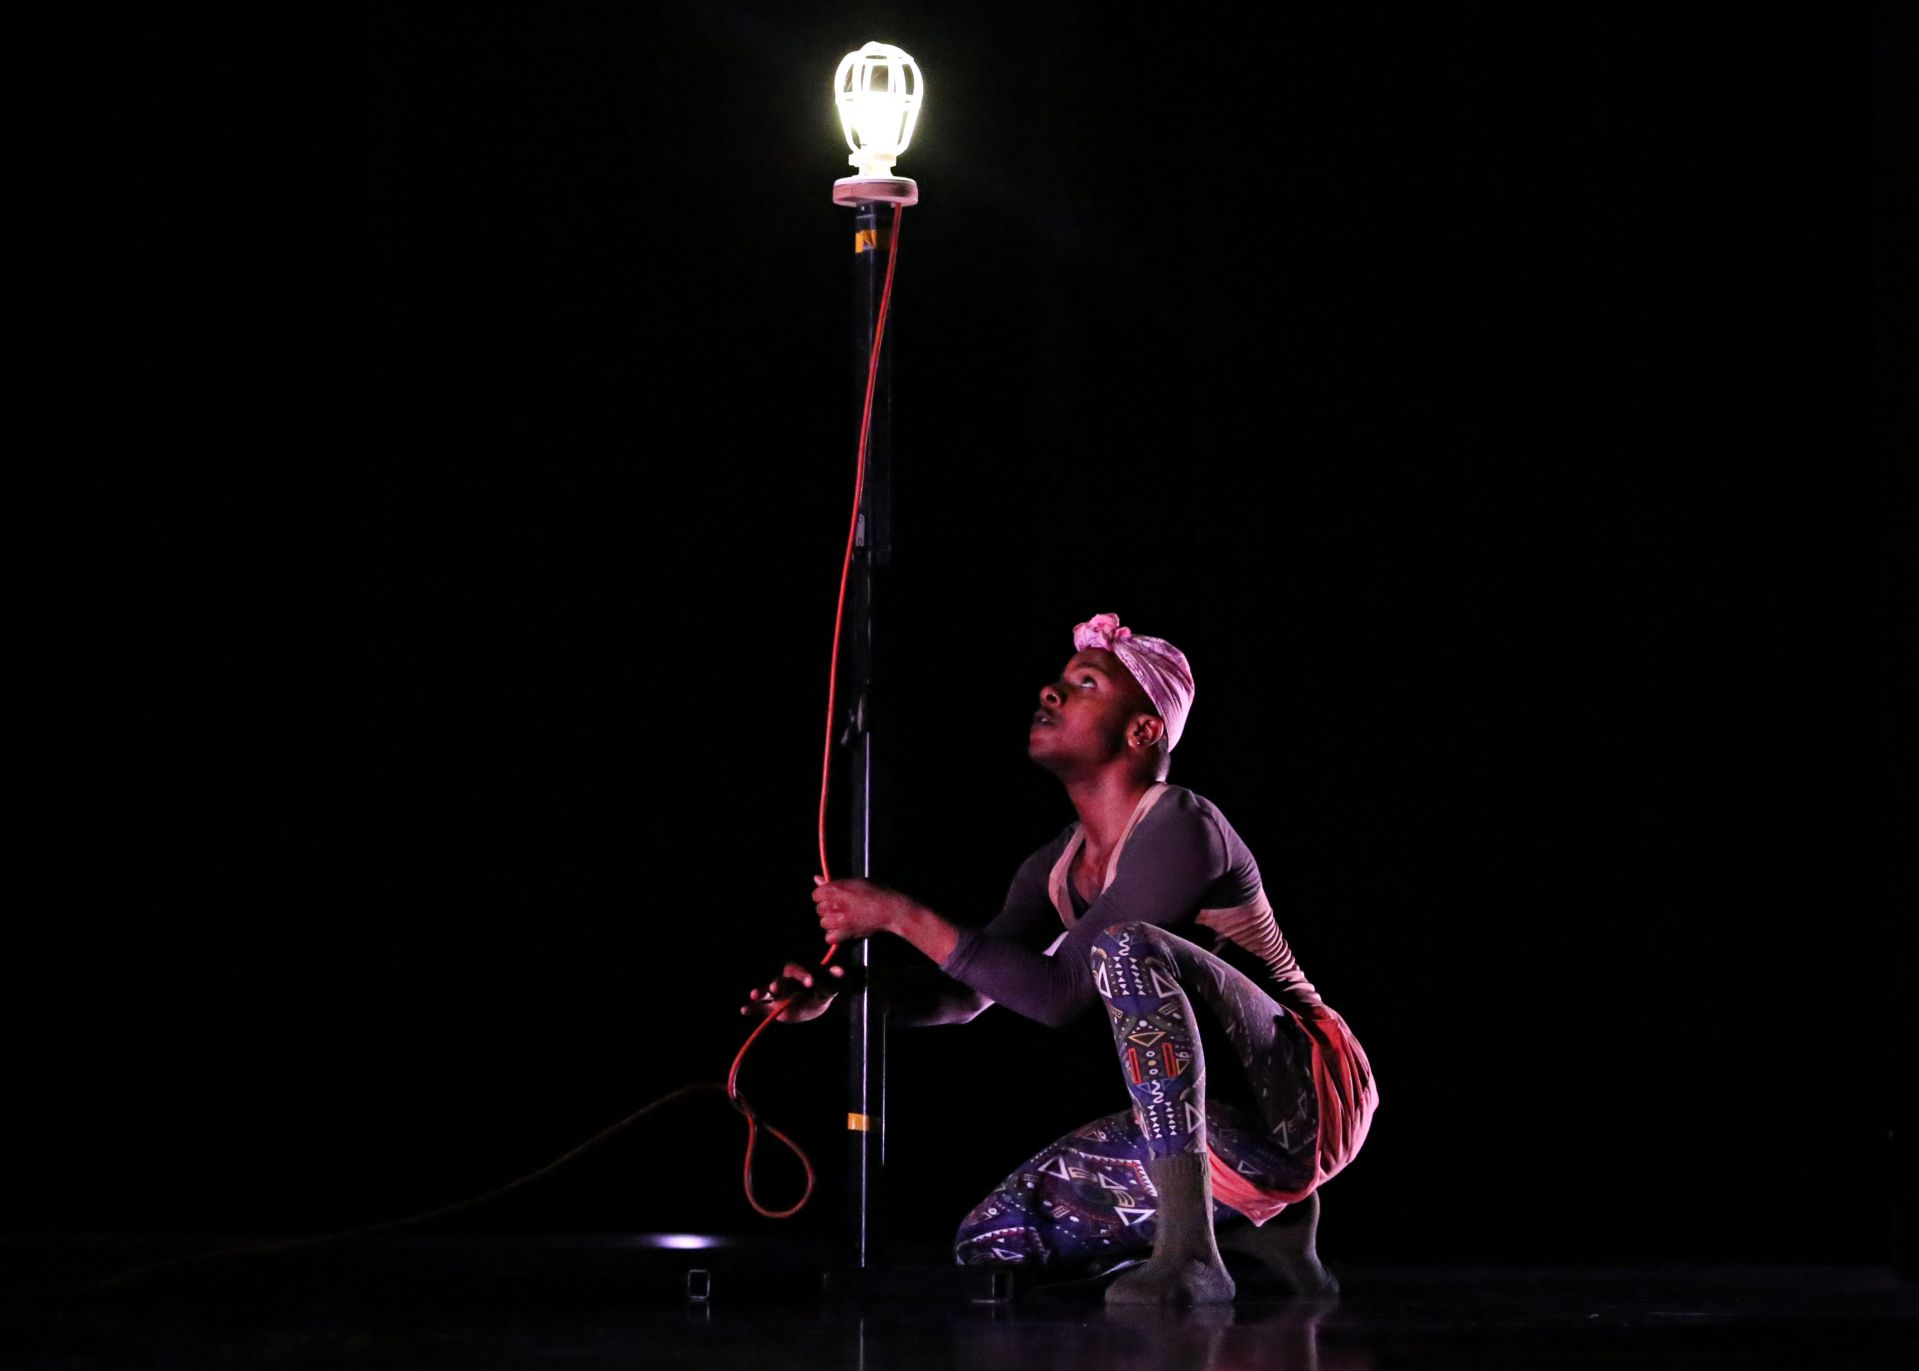 Ya-Ya Fairley '12 used a ghostlight as a prop in the center of the stage, dancing in the small spot of light it cast.